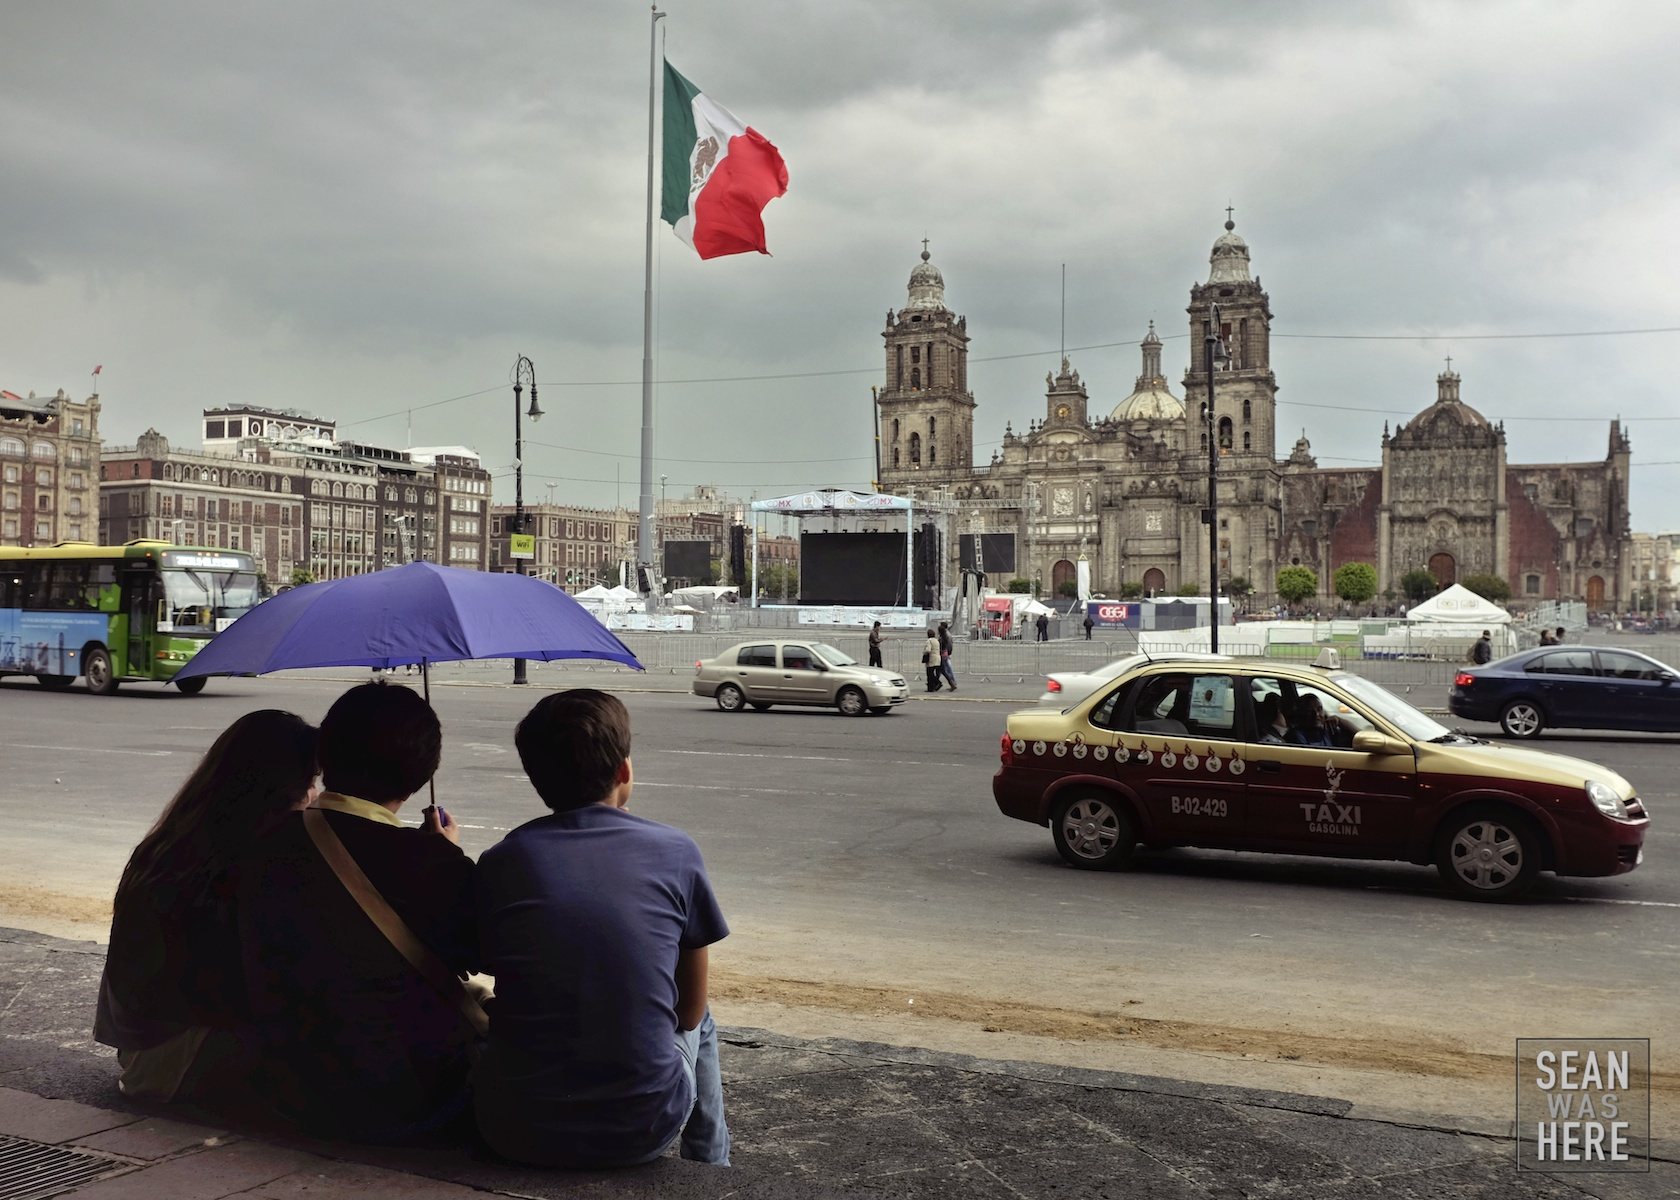 Zócalo Square, Mexico City